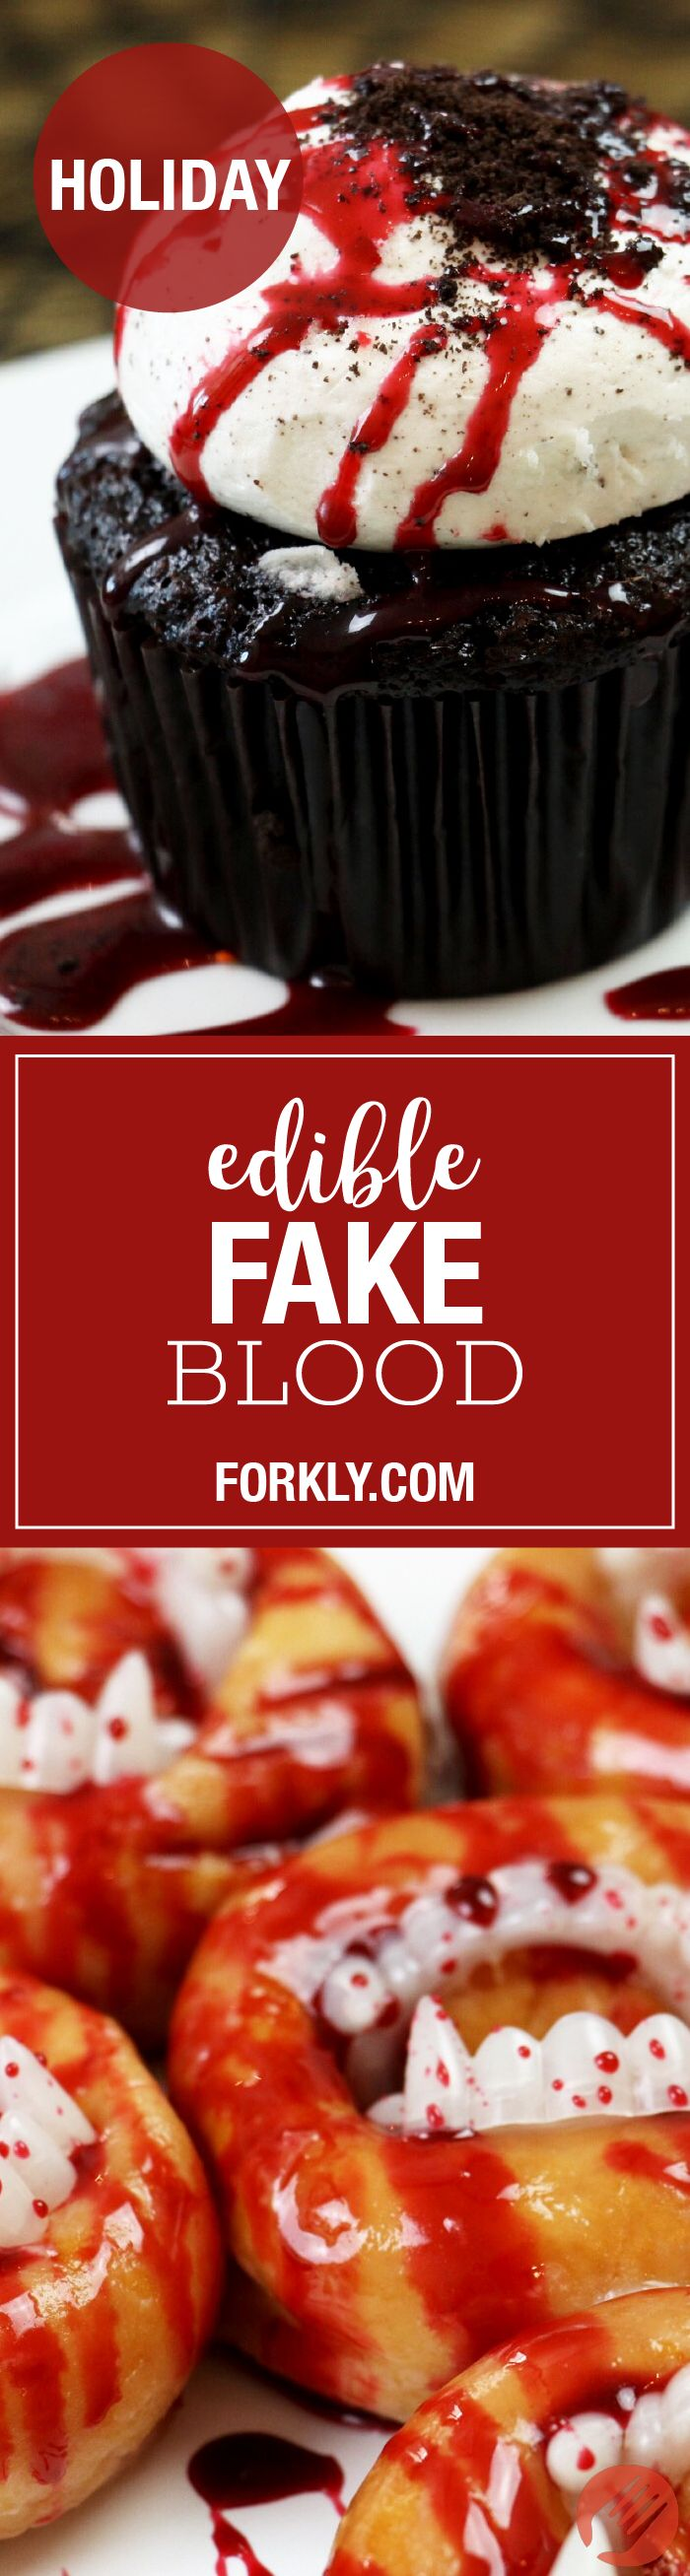 Edible Fake Blood The Easiest Way To Spookify Your Desserts Into A Bloody Gory Halloween